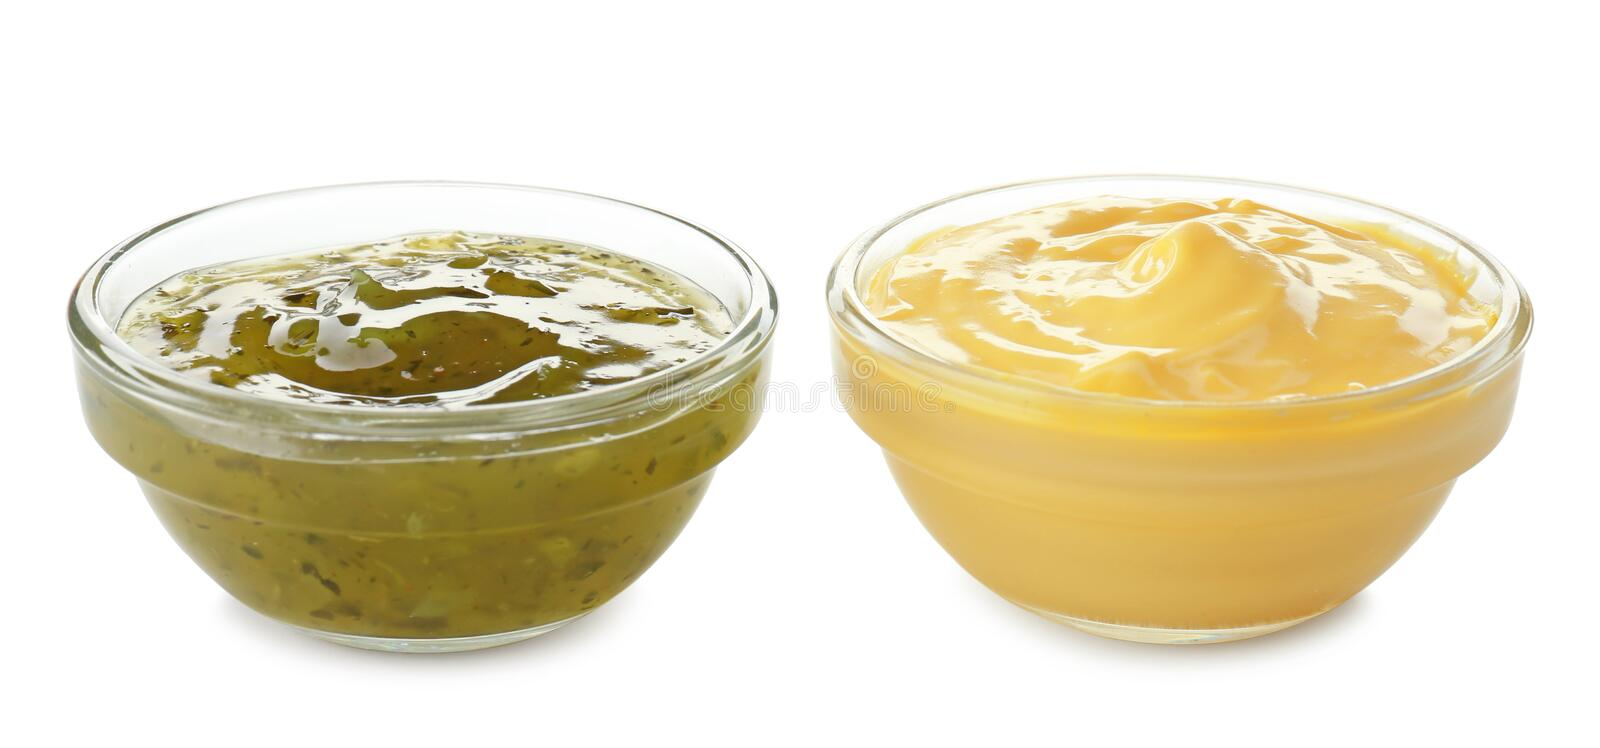 Tasty sauces in bowls on white background stock photos